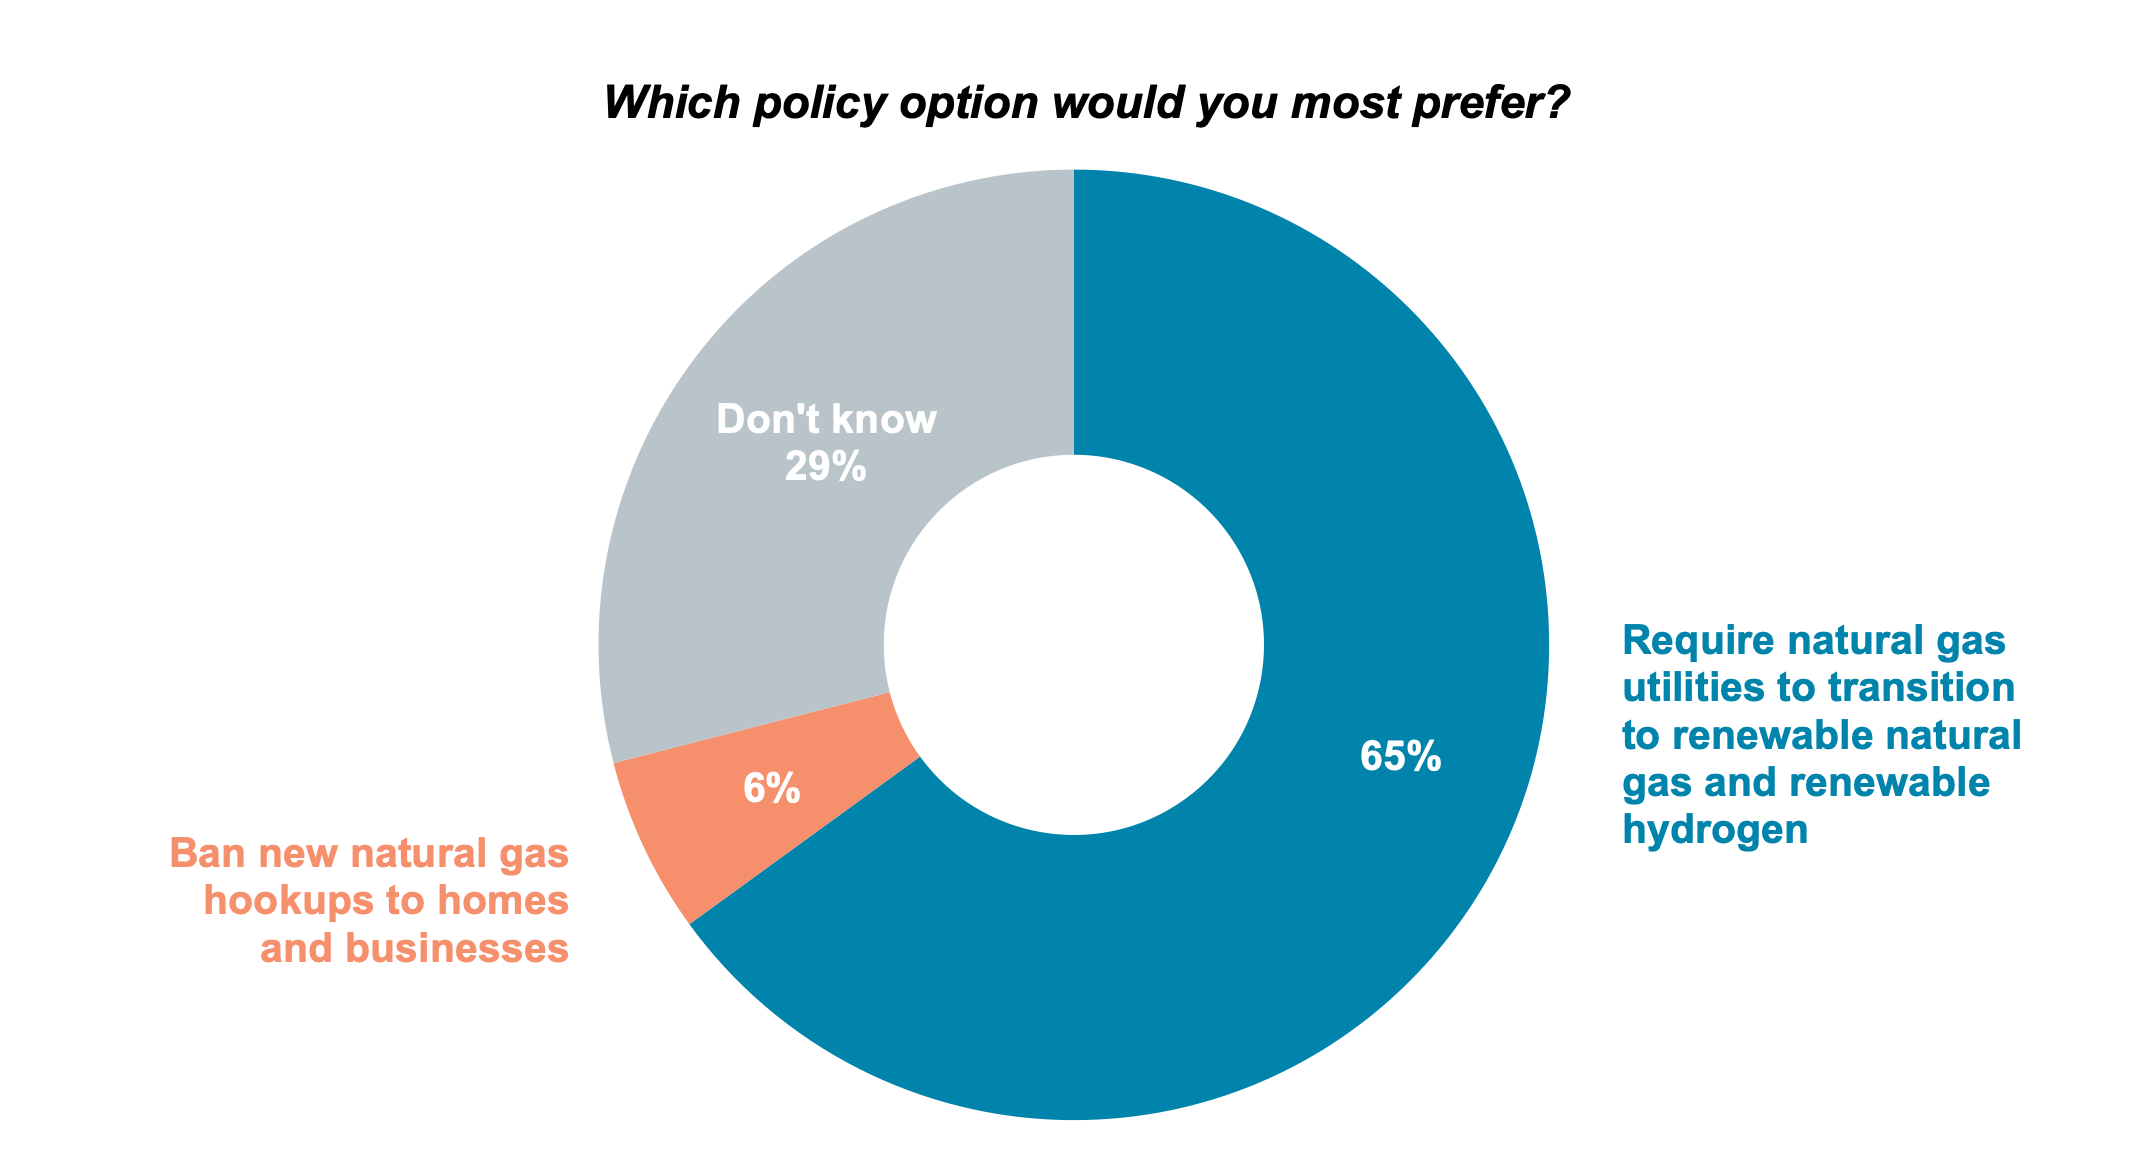 Pie chart results from asking Oregon residents which policy option they would most support, banning new natural gas hookups to homes and businesses or requiring natural gas utilities to transition to renewable natural gas and renewable hydrogen.